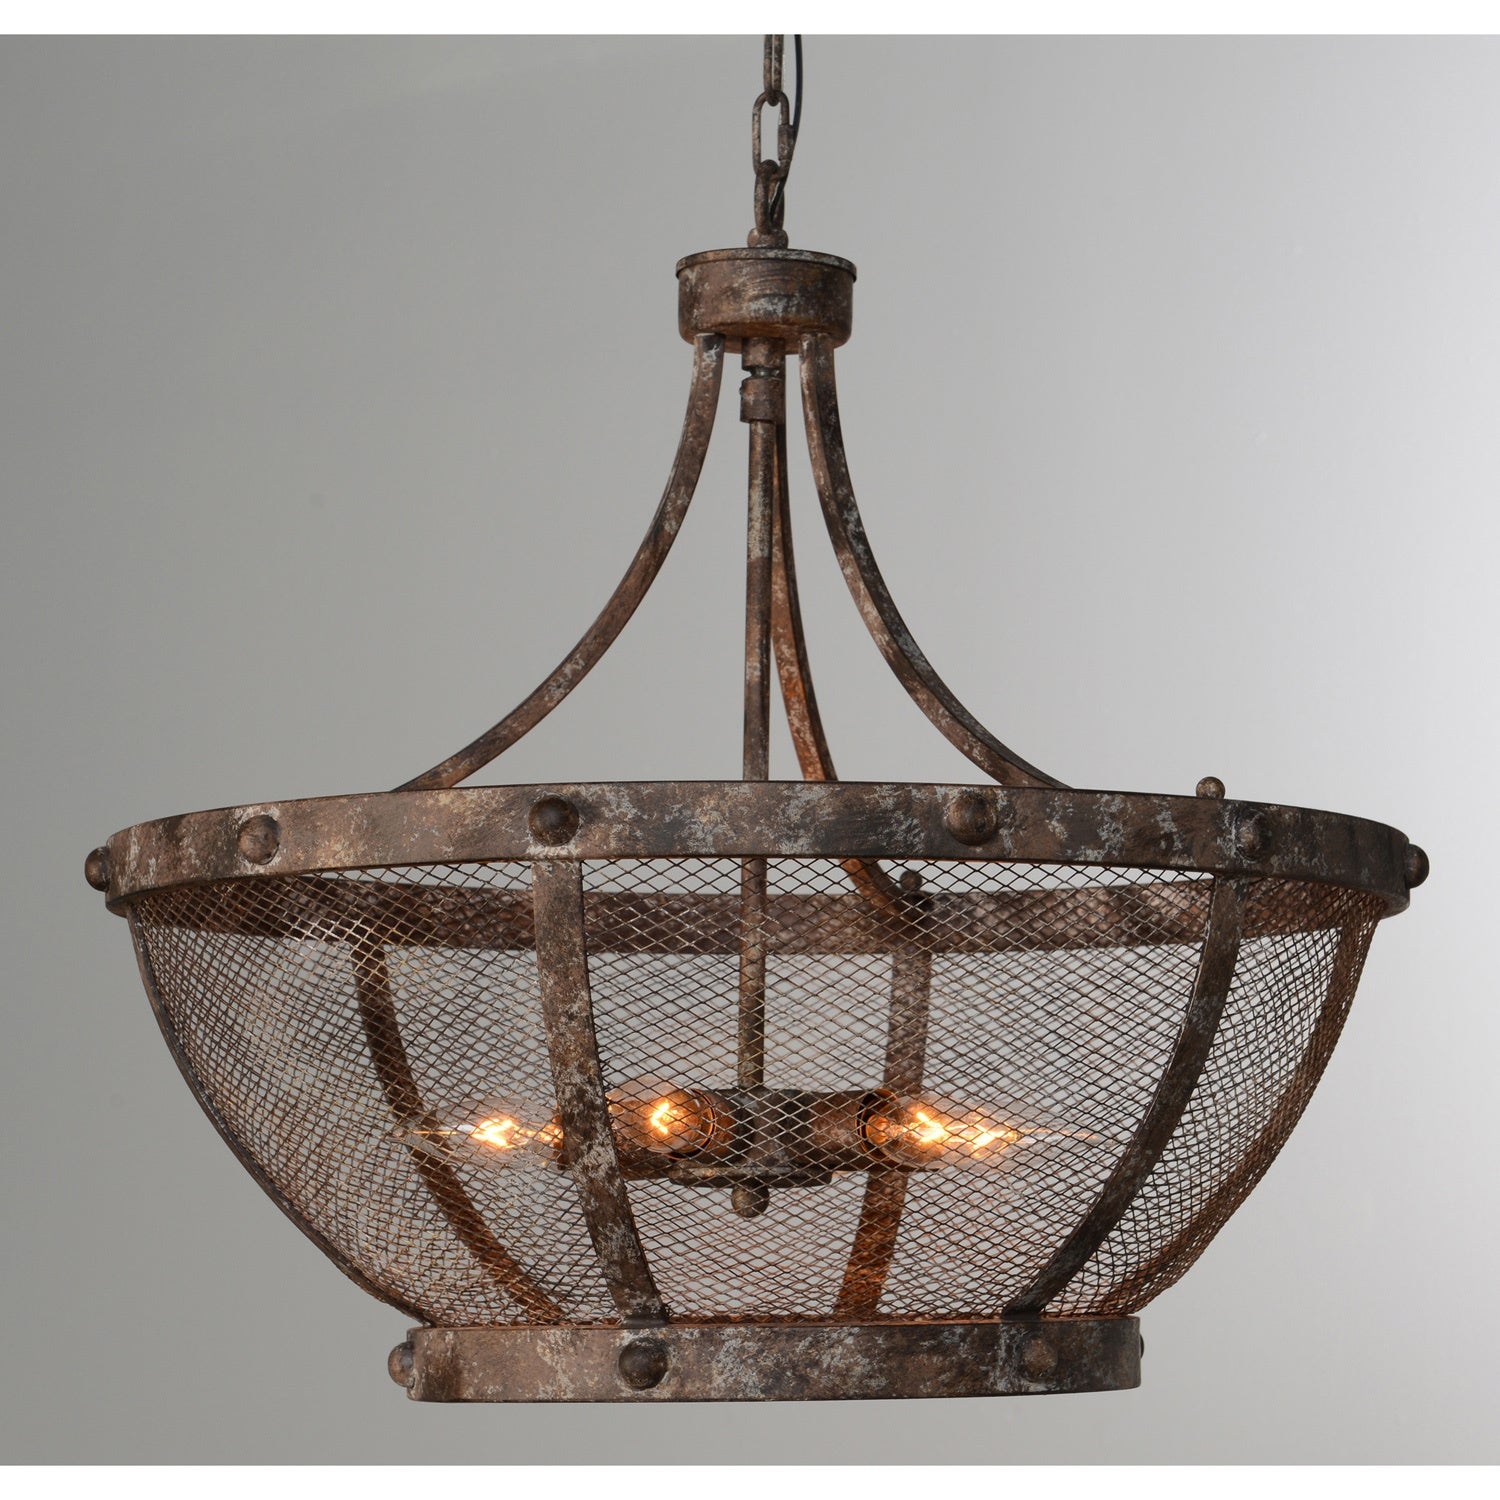 Charleston Antique Bronze 6-Light Iron Mesh Chandelier by Kosas Home - Free  Shipping Today - Overstock.com - 23294742